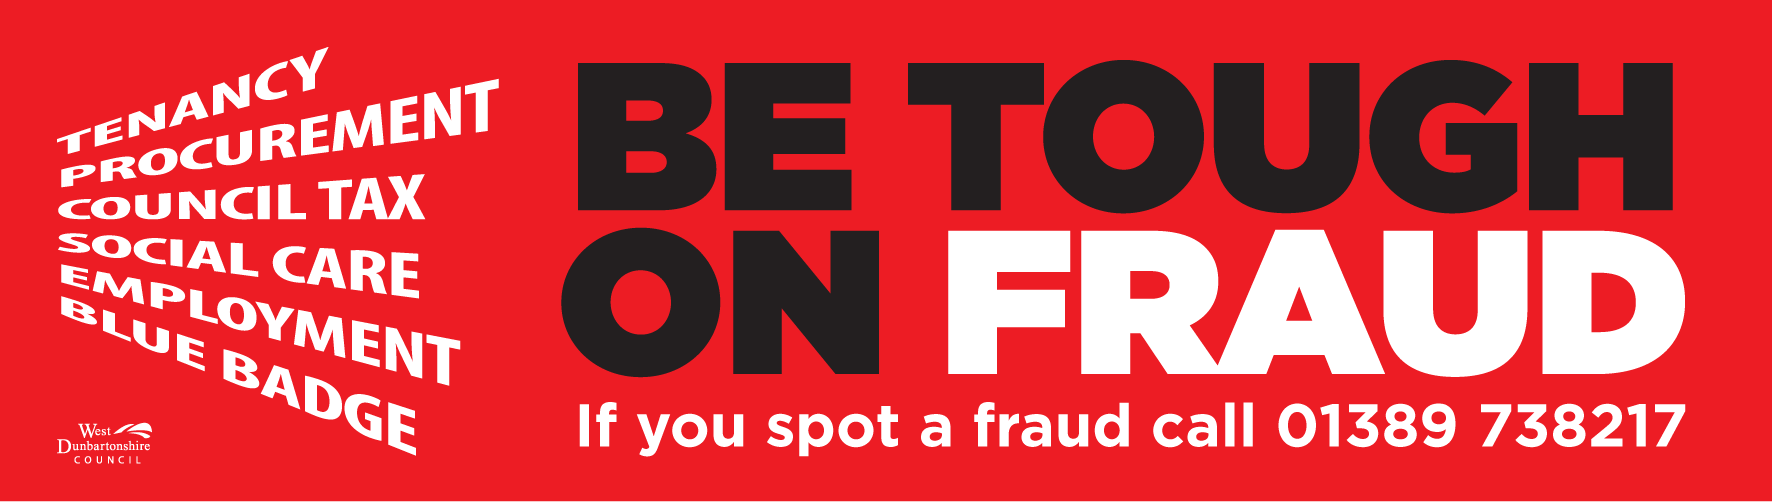 Be tough on fraud